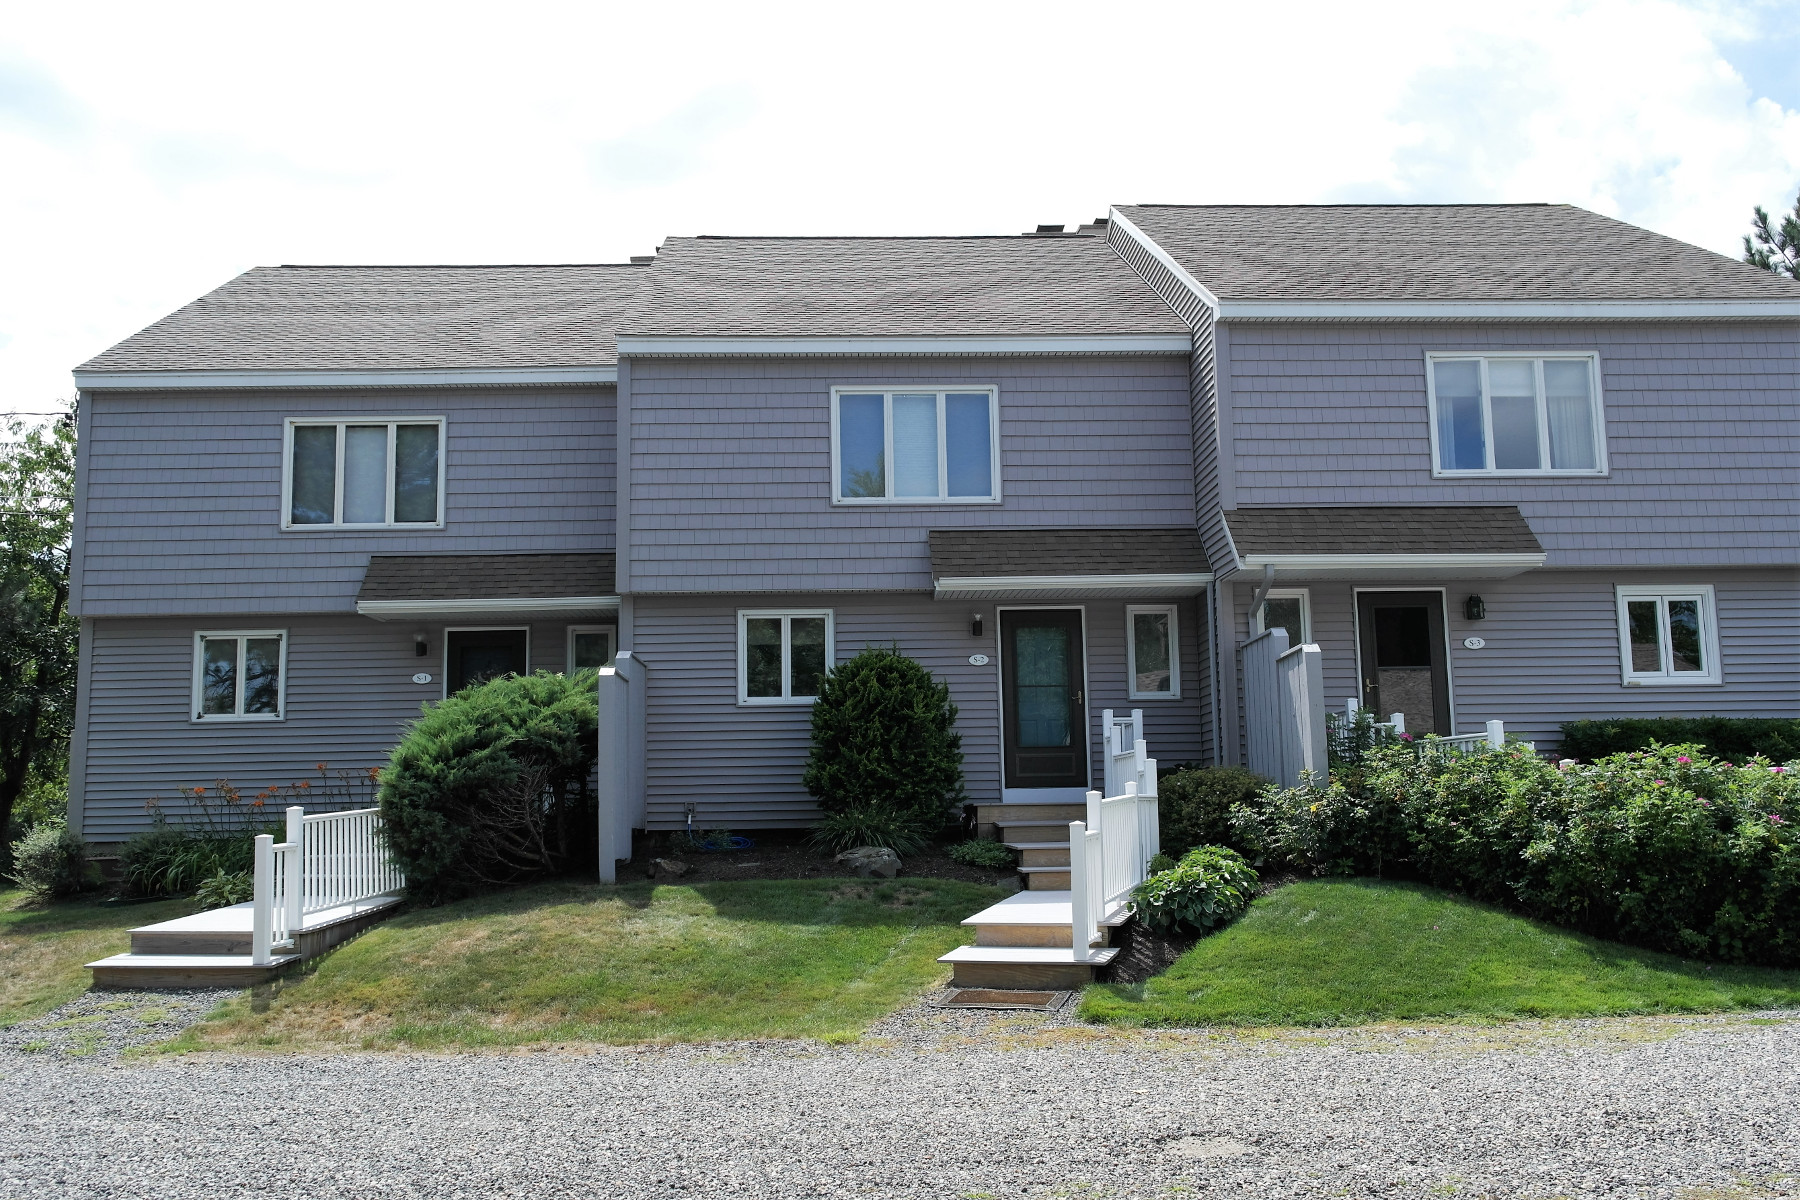 Townhouse for Sale at Marsh Views - Walk to Beach 778 Ocean Avenue #5 Wells, Maine 04090 United States